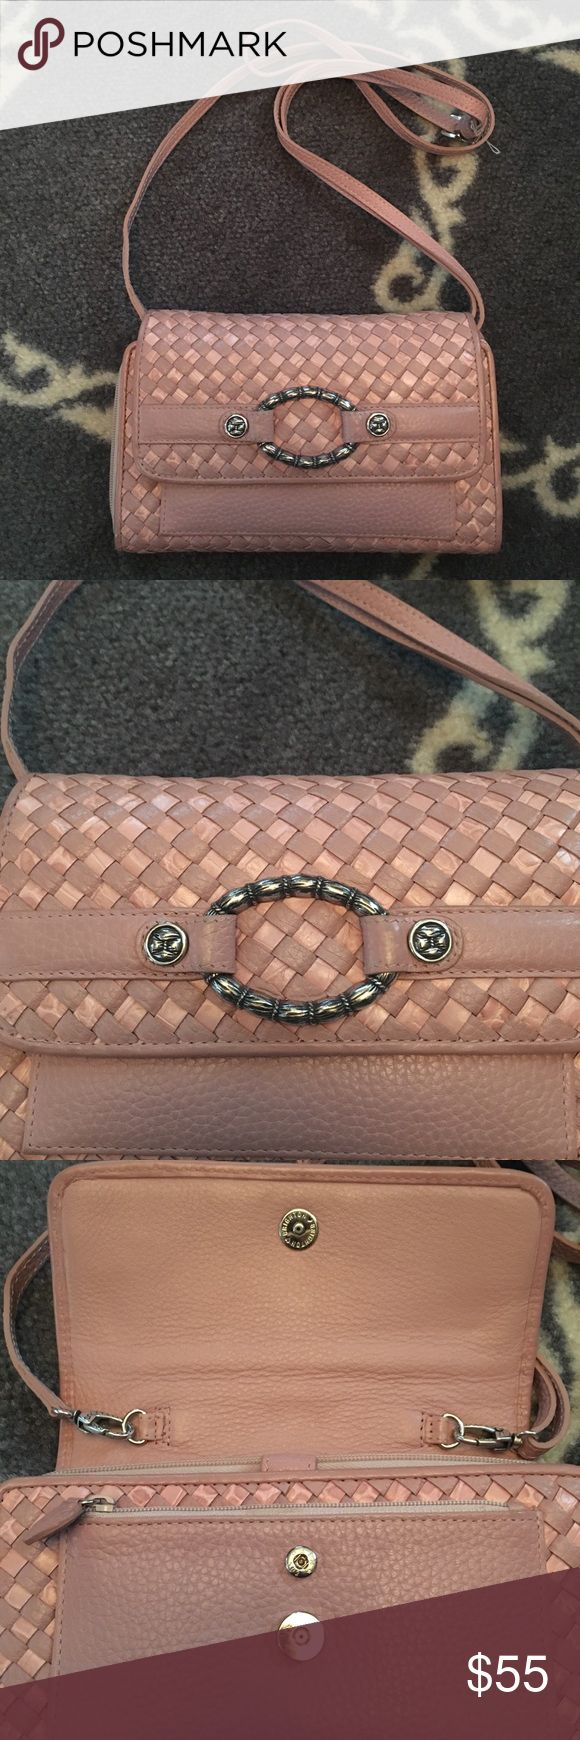 Brighton Woven Leather Crossbody Practically brand new Brighton leather woven Crossbody. It is a gorgeous bag!! Very light pink leather with tons of pockets. Magnetic snap closure. There is a space for checks, 6 credit cards slots, and an area for change and money. It also has a small zipper pocket on front of bag. Measurements are: 8 inches long and 5 inches high. Smoke free, pet friendly home. Brighton Bags Crossbody Bags